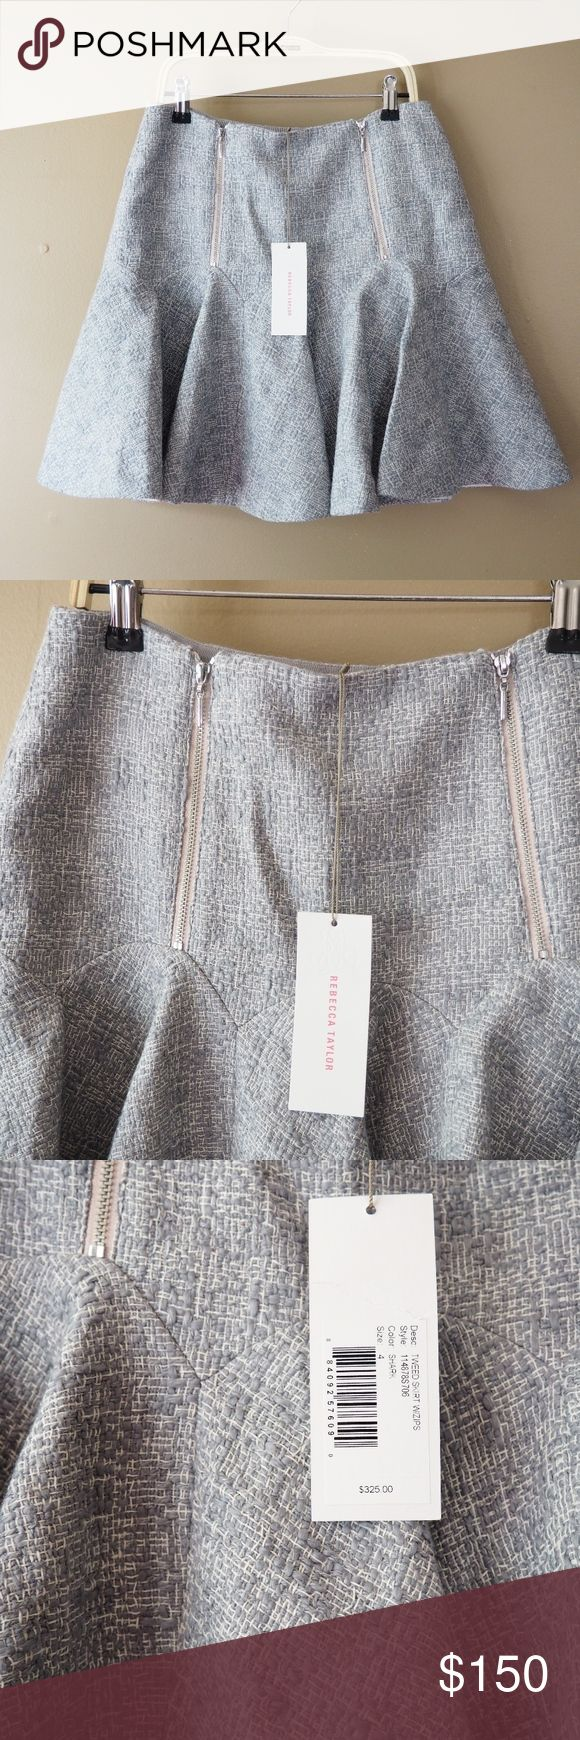 """Rebecca Taylor Grey Double Zip Front Godet Skirt 4 Hello! Up for sale is this Rebecca Taylor NWT Skirt in size 4. Please view all photos and measurements to ensure your perfect fit before purchase! Thank You! :)  $325.00 Value  Dry Clean Only 83% Cotton, 9%Viscose, 6% Acrylic, 2% Other Fibers 100% Slik Lining   Top-Bottom - 18"""" Waist - 14"""" Hips - 19""""  Do not hesitate to message me with any questions you may have!  Have a lovely day! Rebecca Taylor Skirts Mini"""